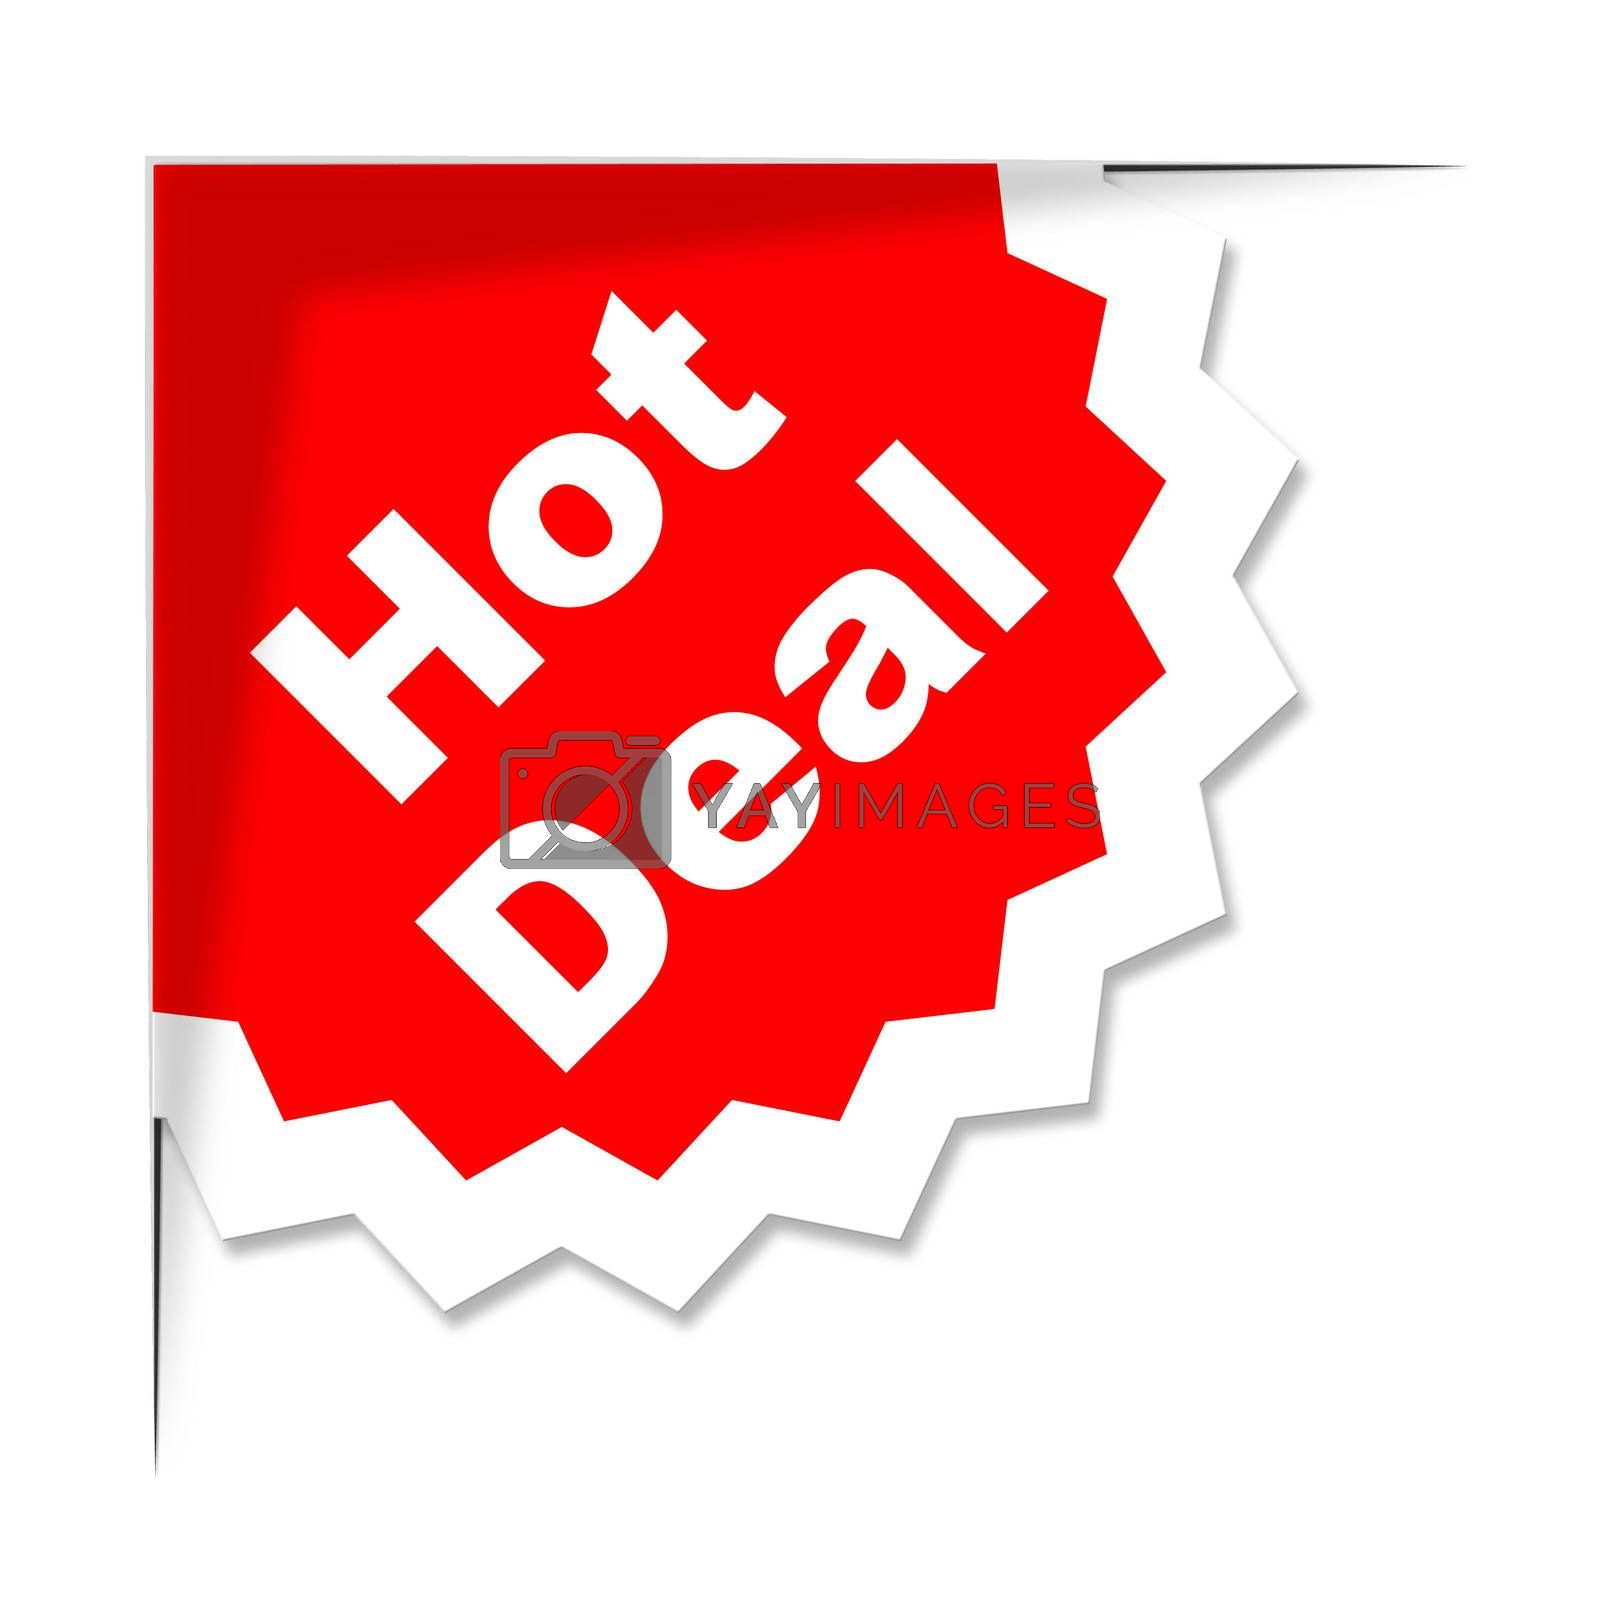 Hot Deal Represents Best Price And Business by stuartmiles